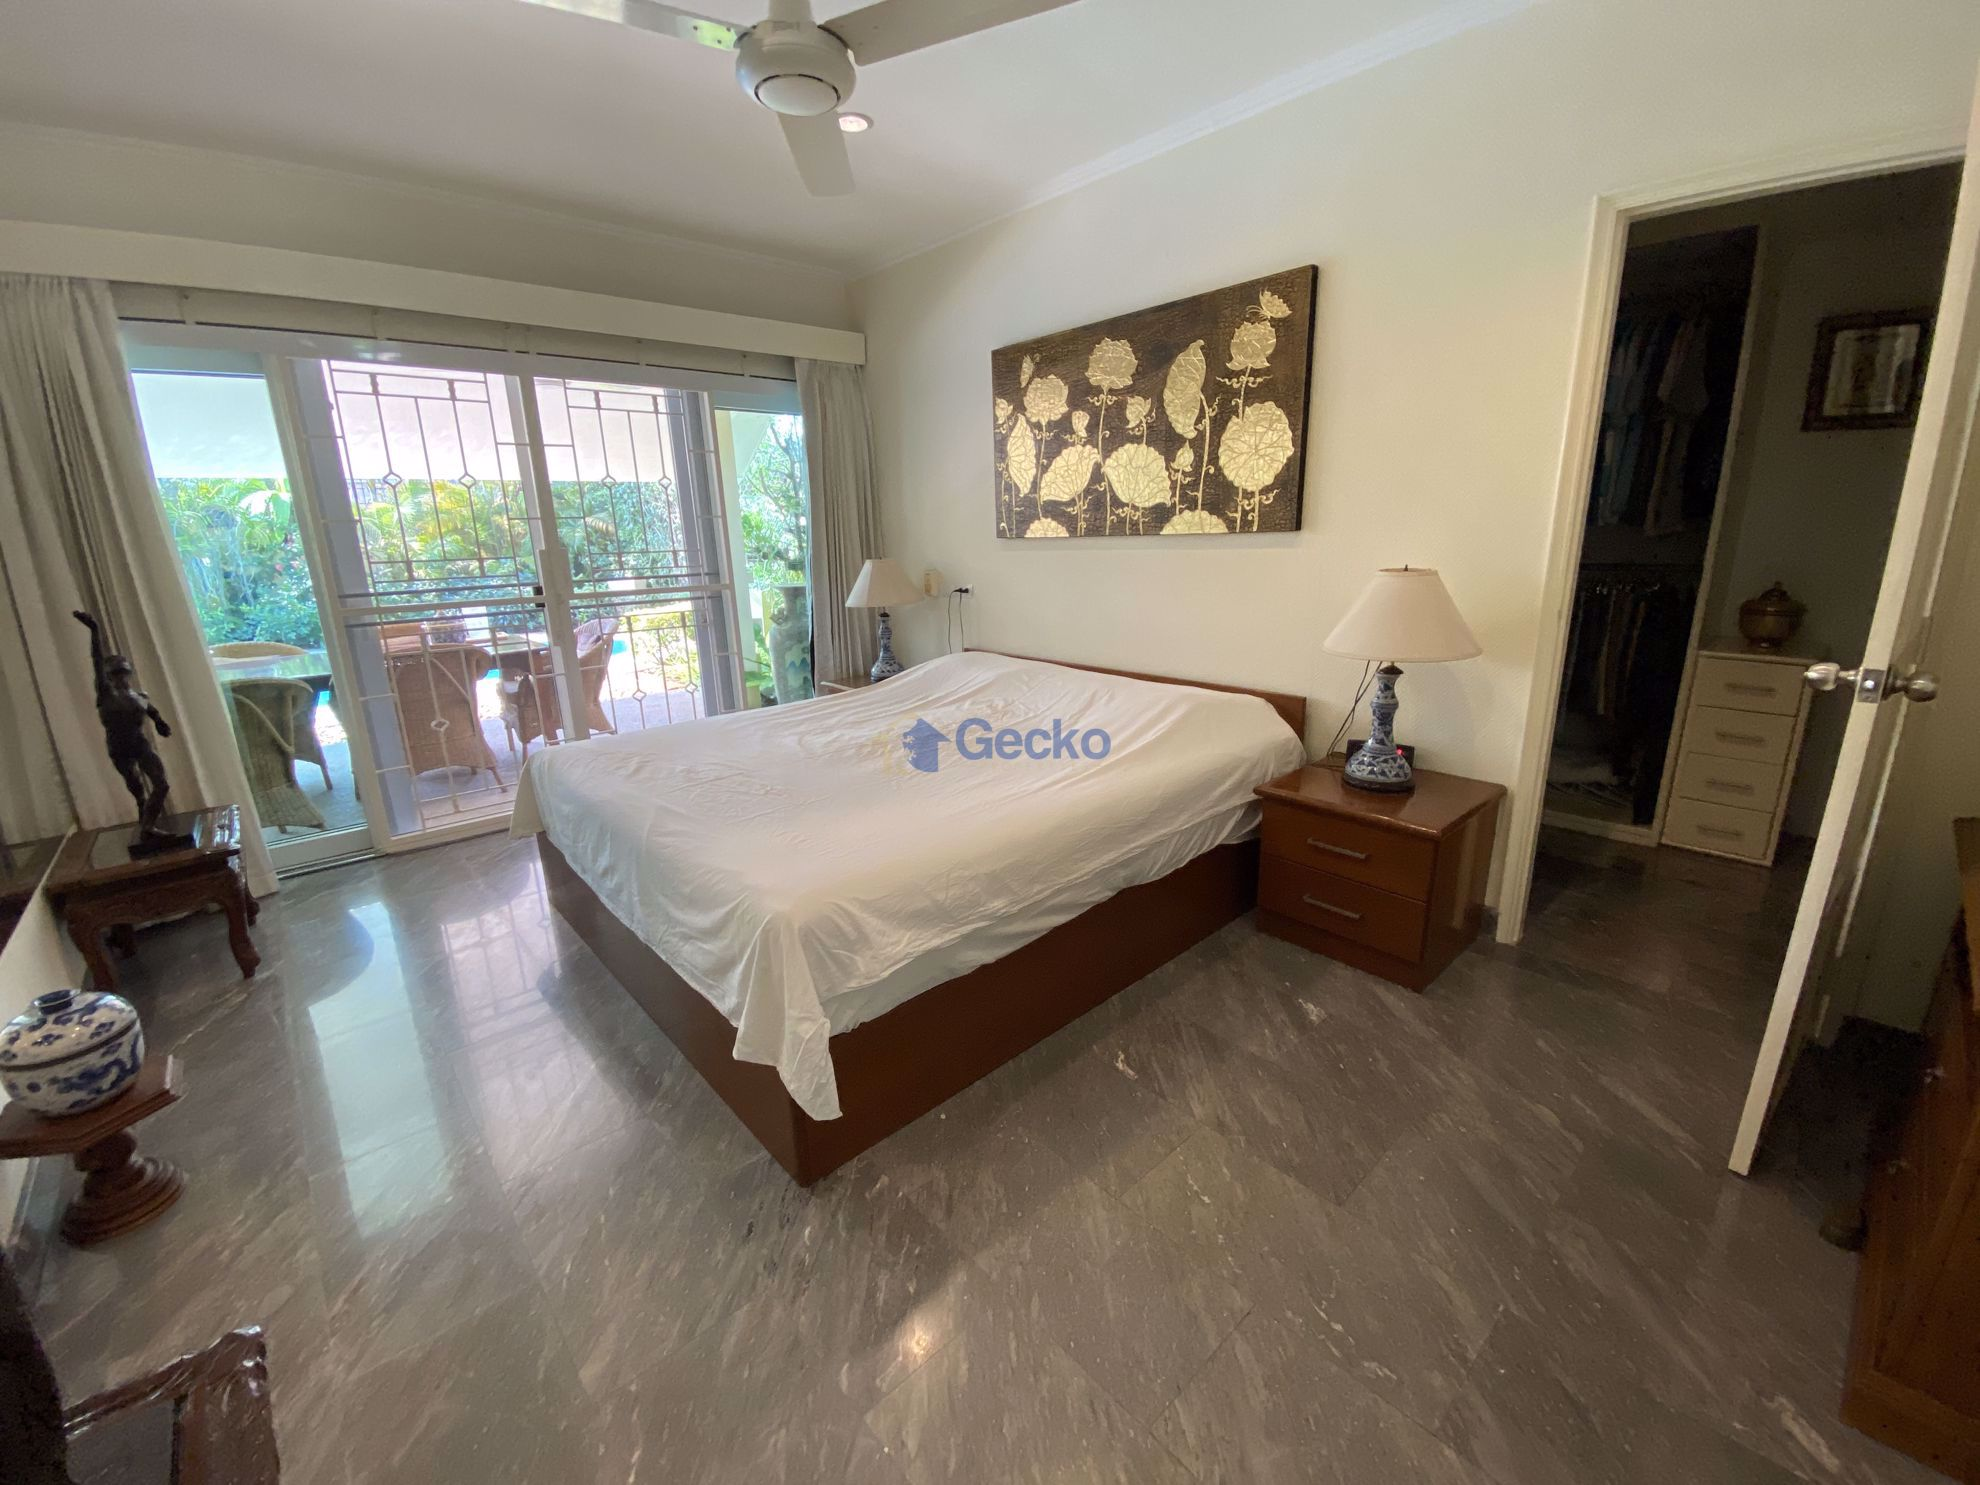 Picture of 2 Bedrooms bed in House in Royal Prestige in East Pattaya H009082